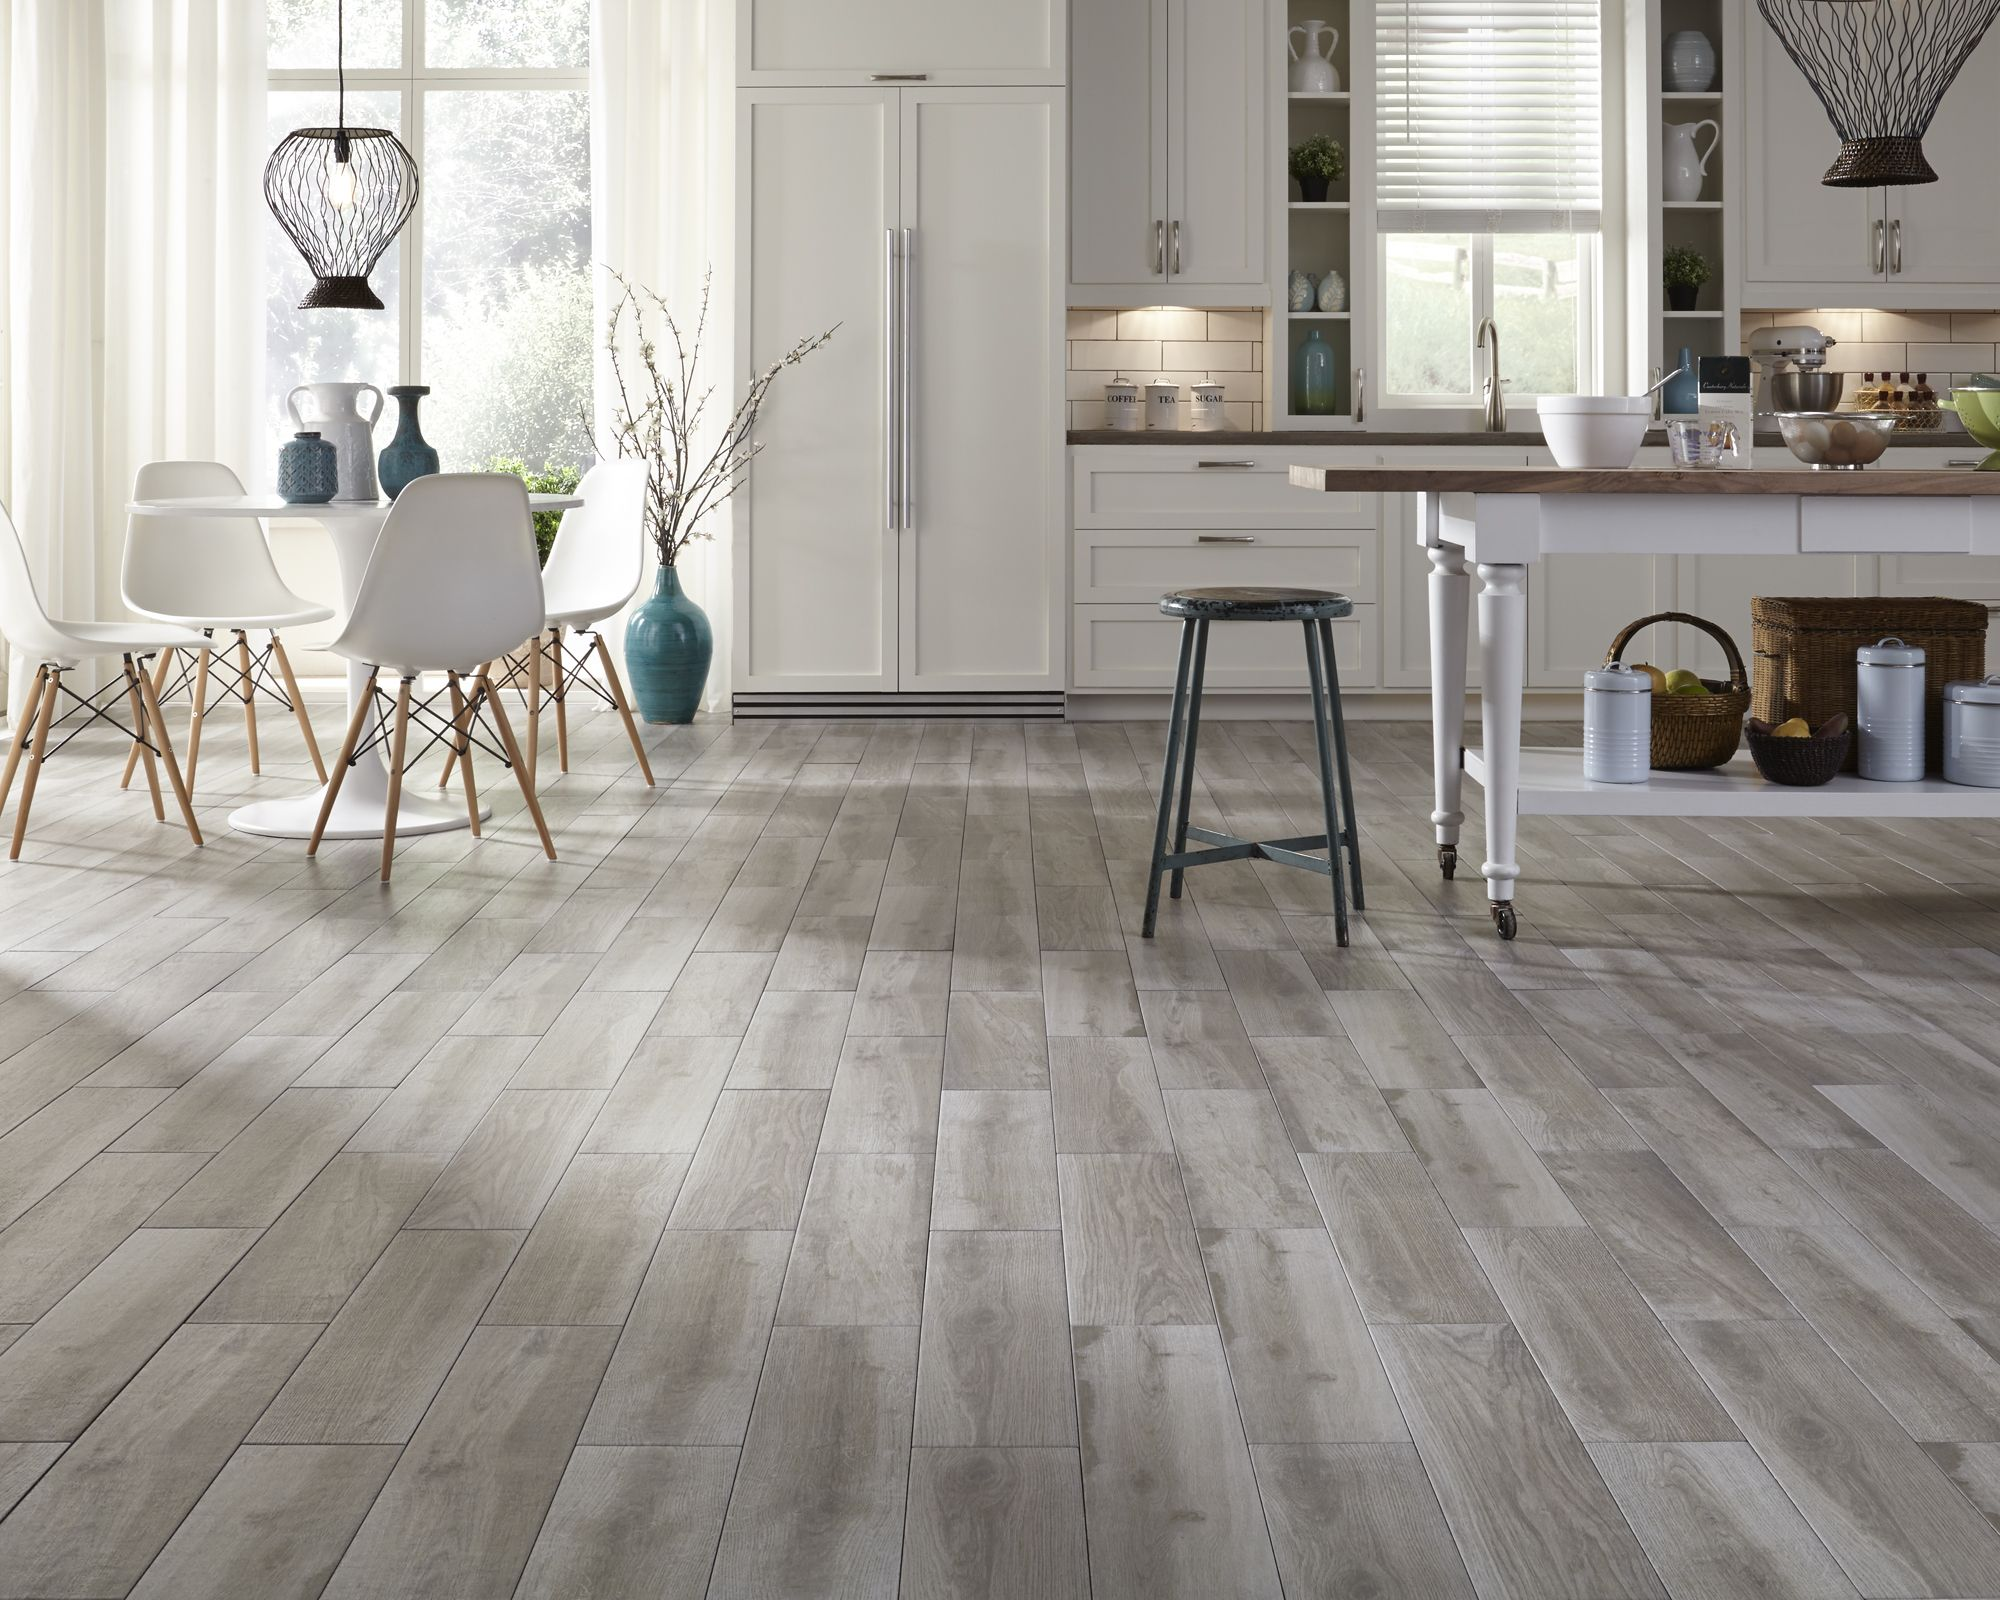 Interested In Wood Look Tile Check Out Himba Gray Porcelain More Gorgeous